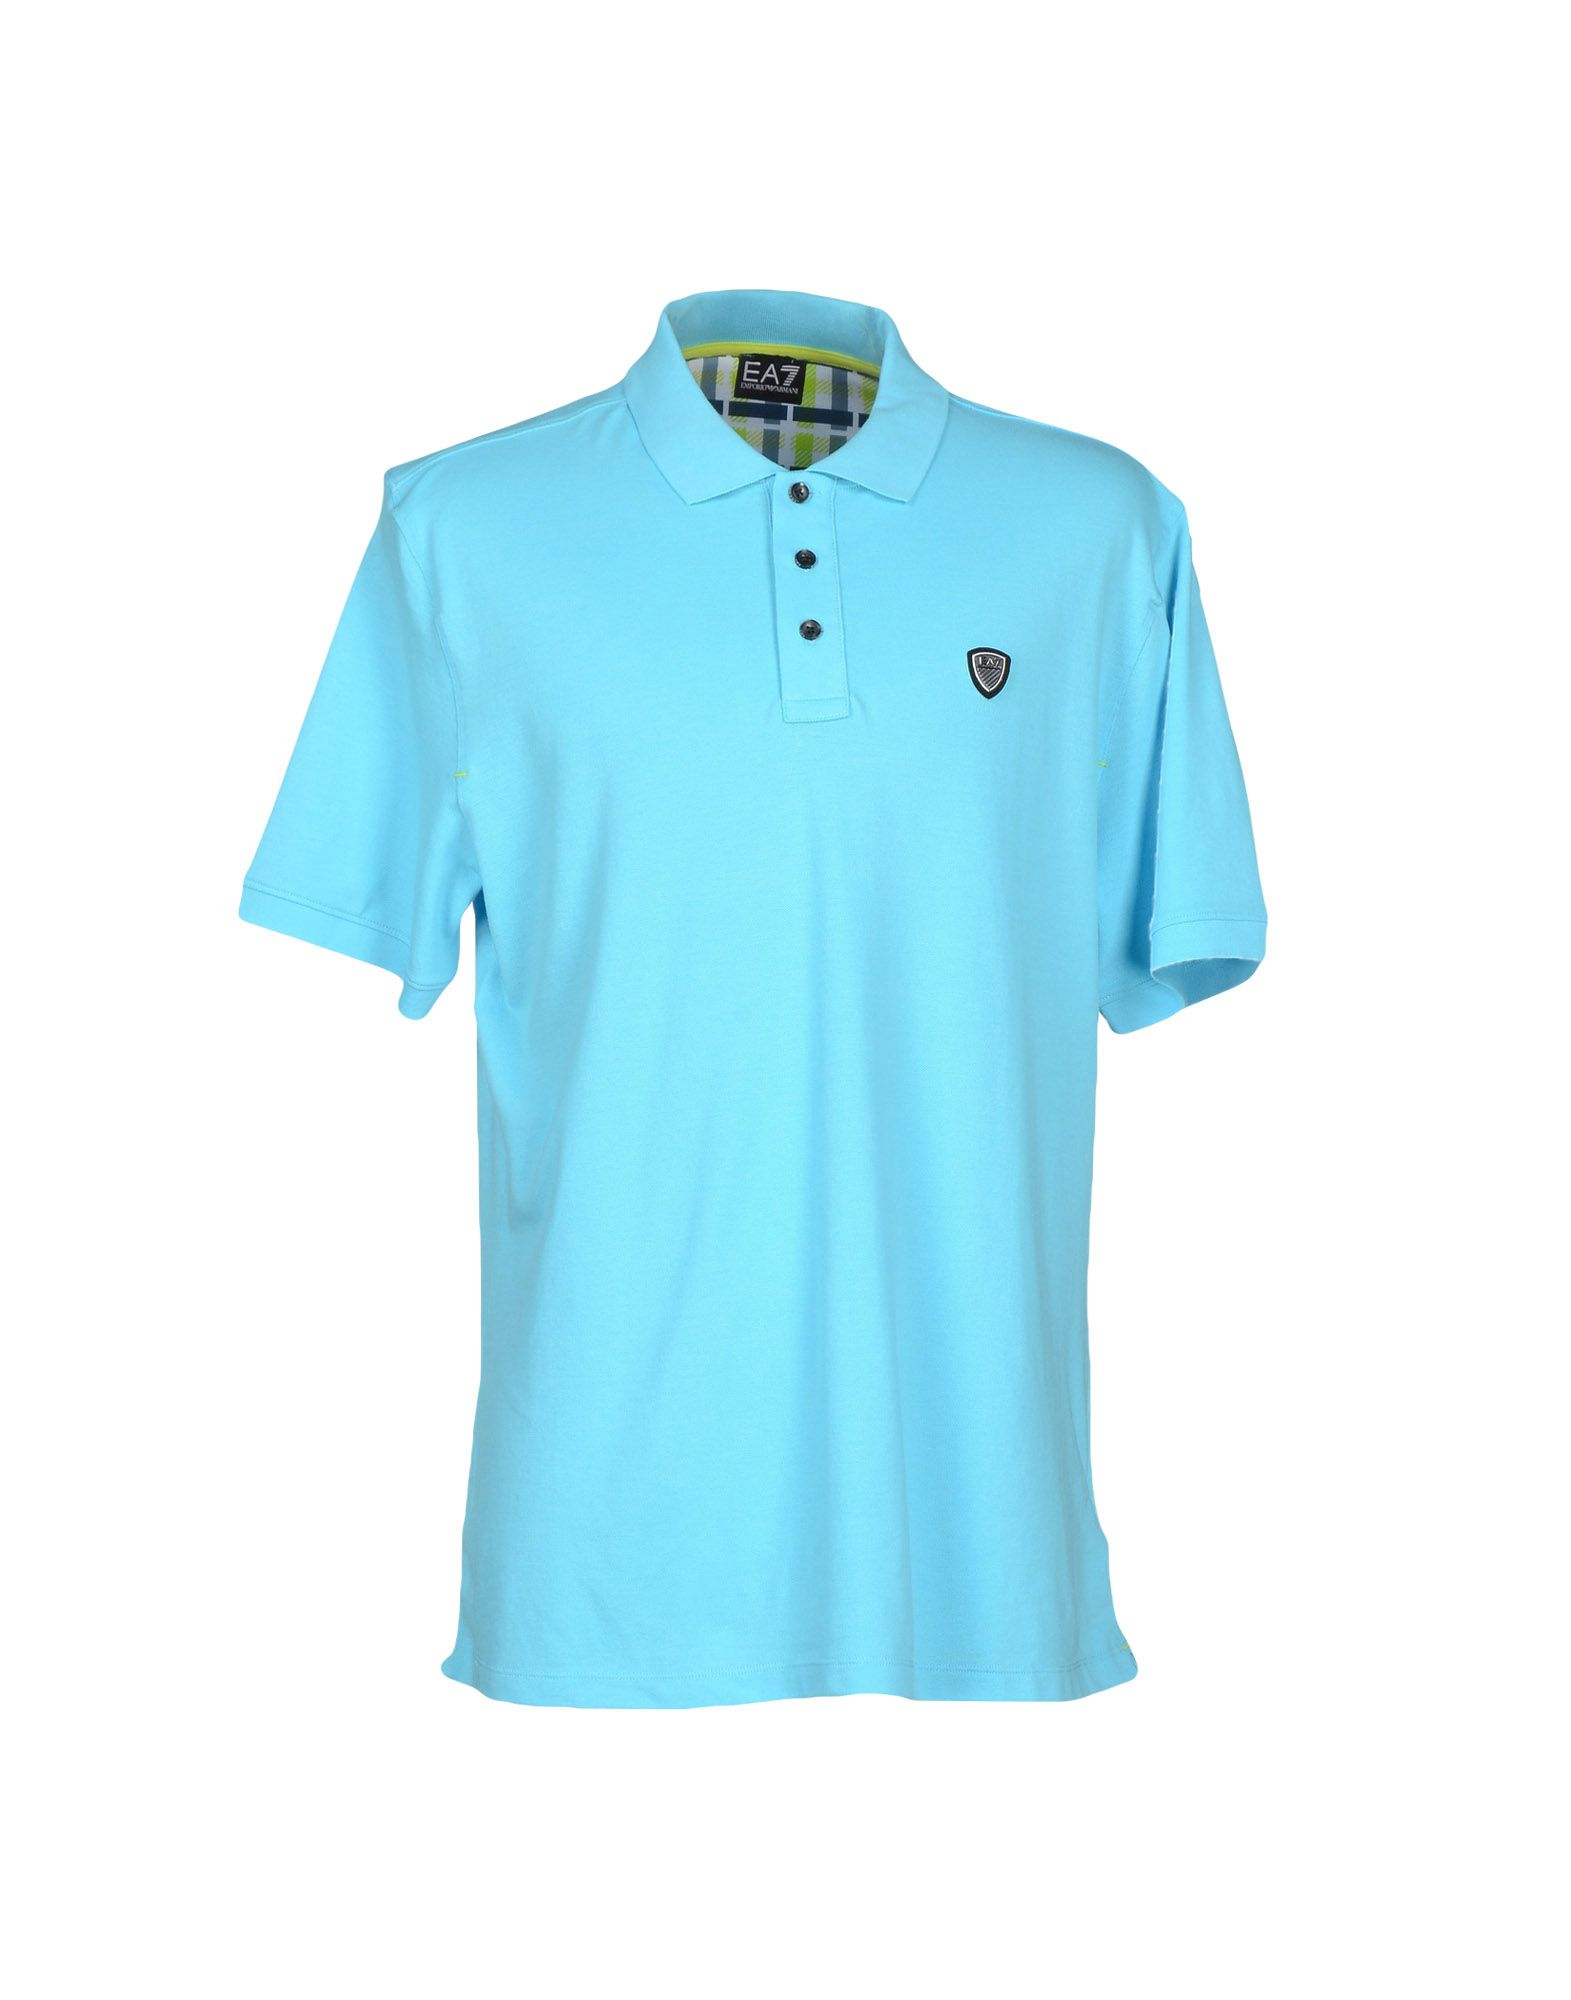 ea7 polo shirt in teal for men turquoise lyst